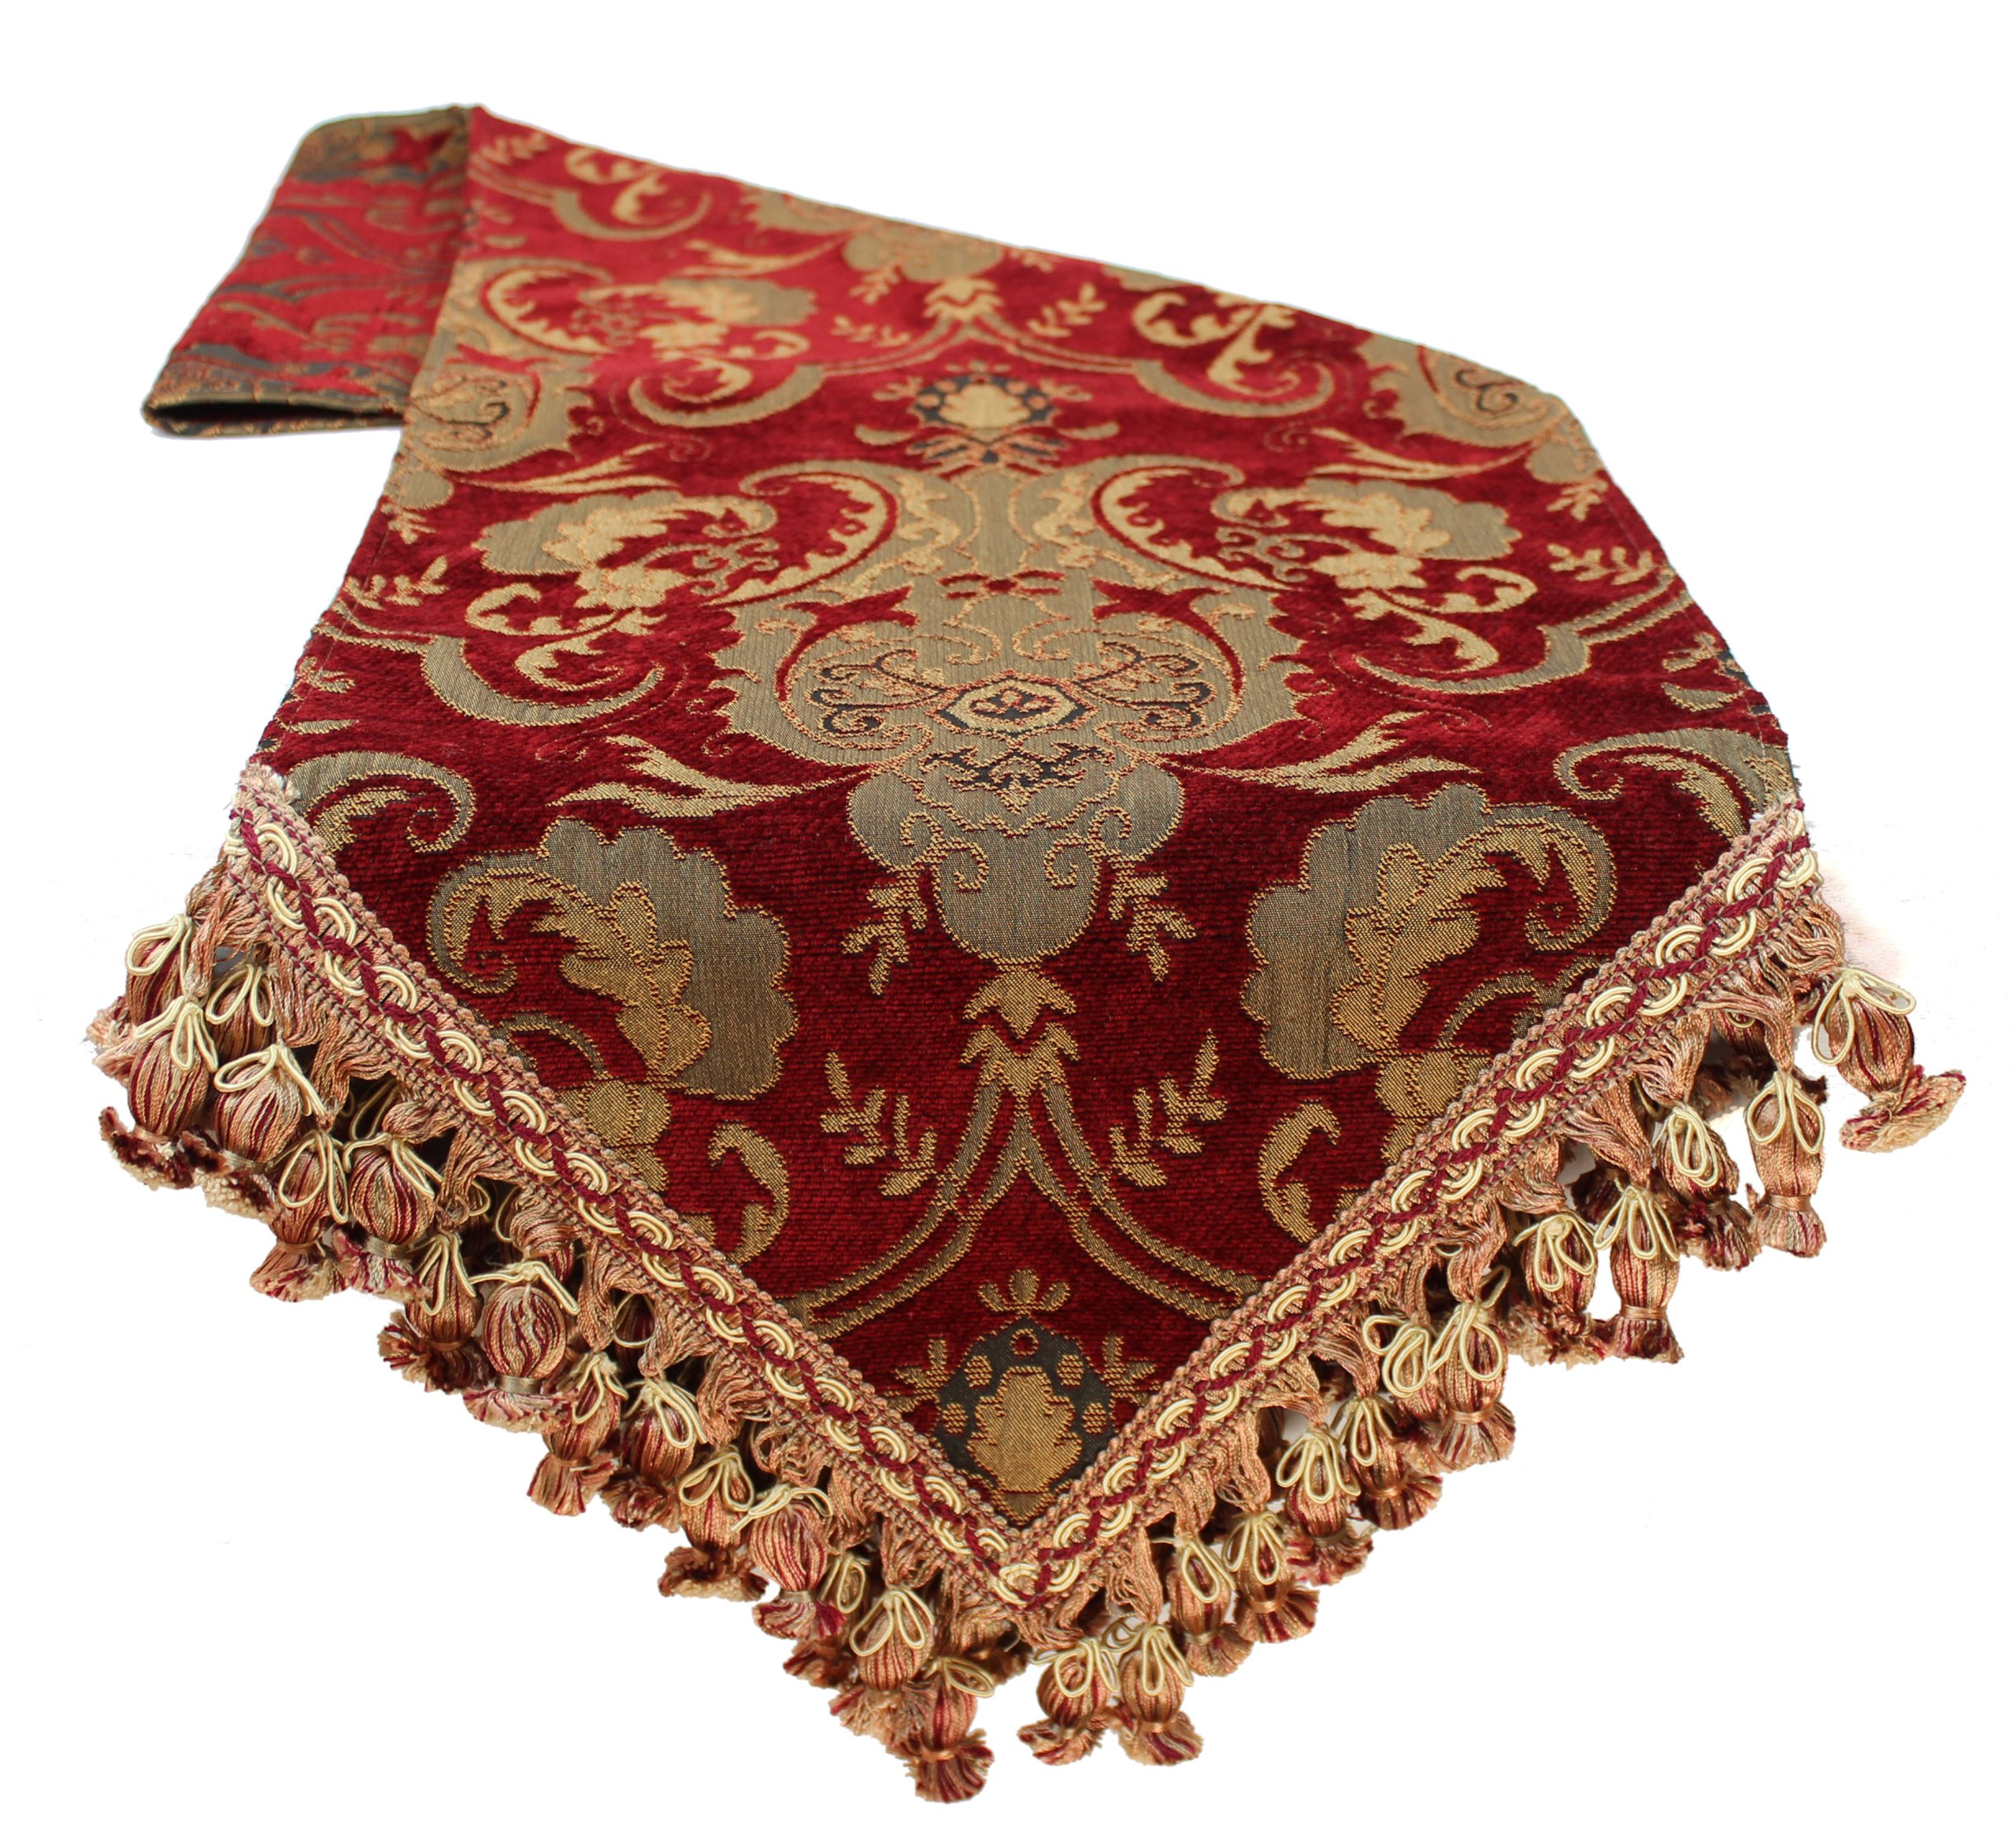 Sherry Kline China Art Table Runner, 13'' x 90'', Red